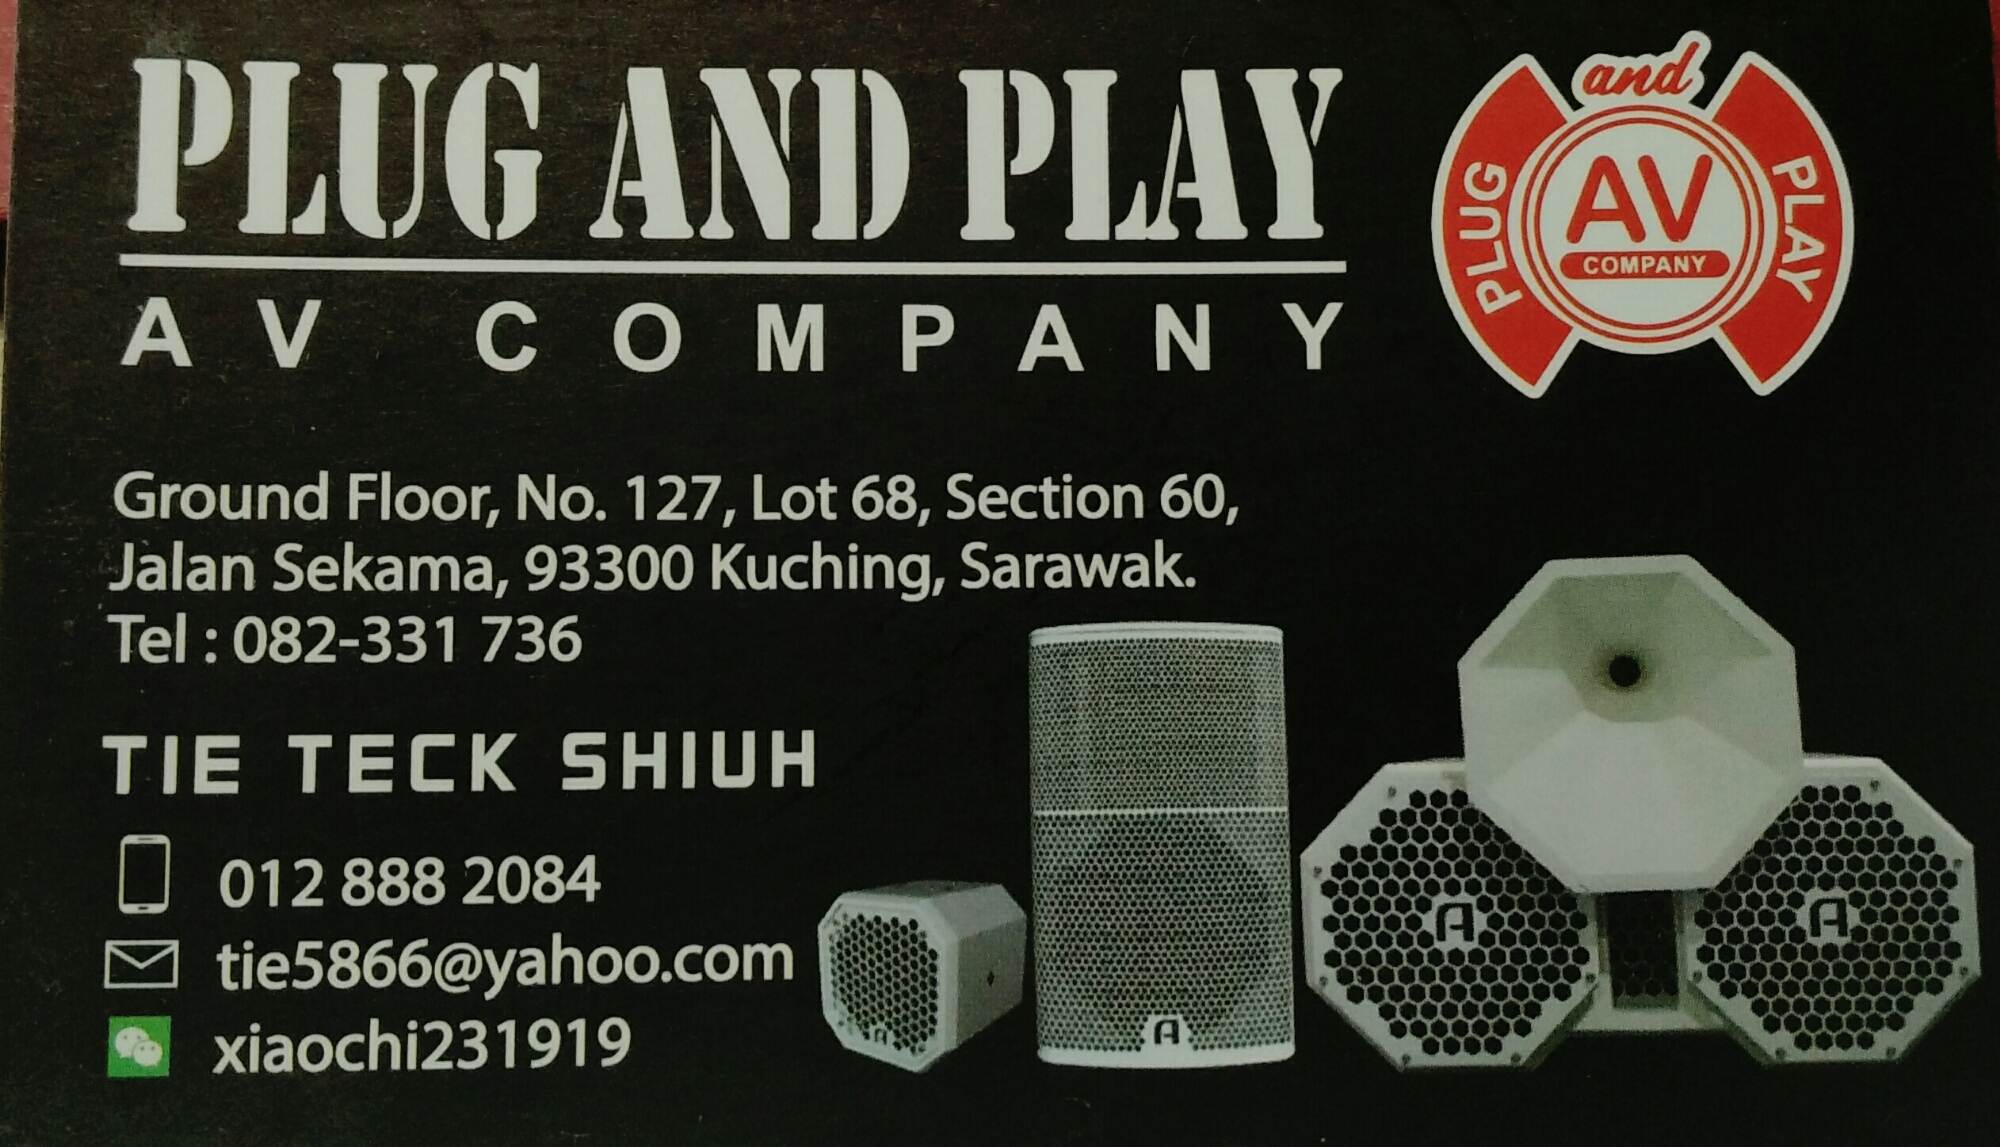 Plug And Play AV Company (KCH)